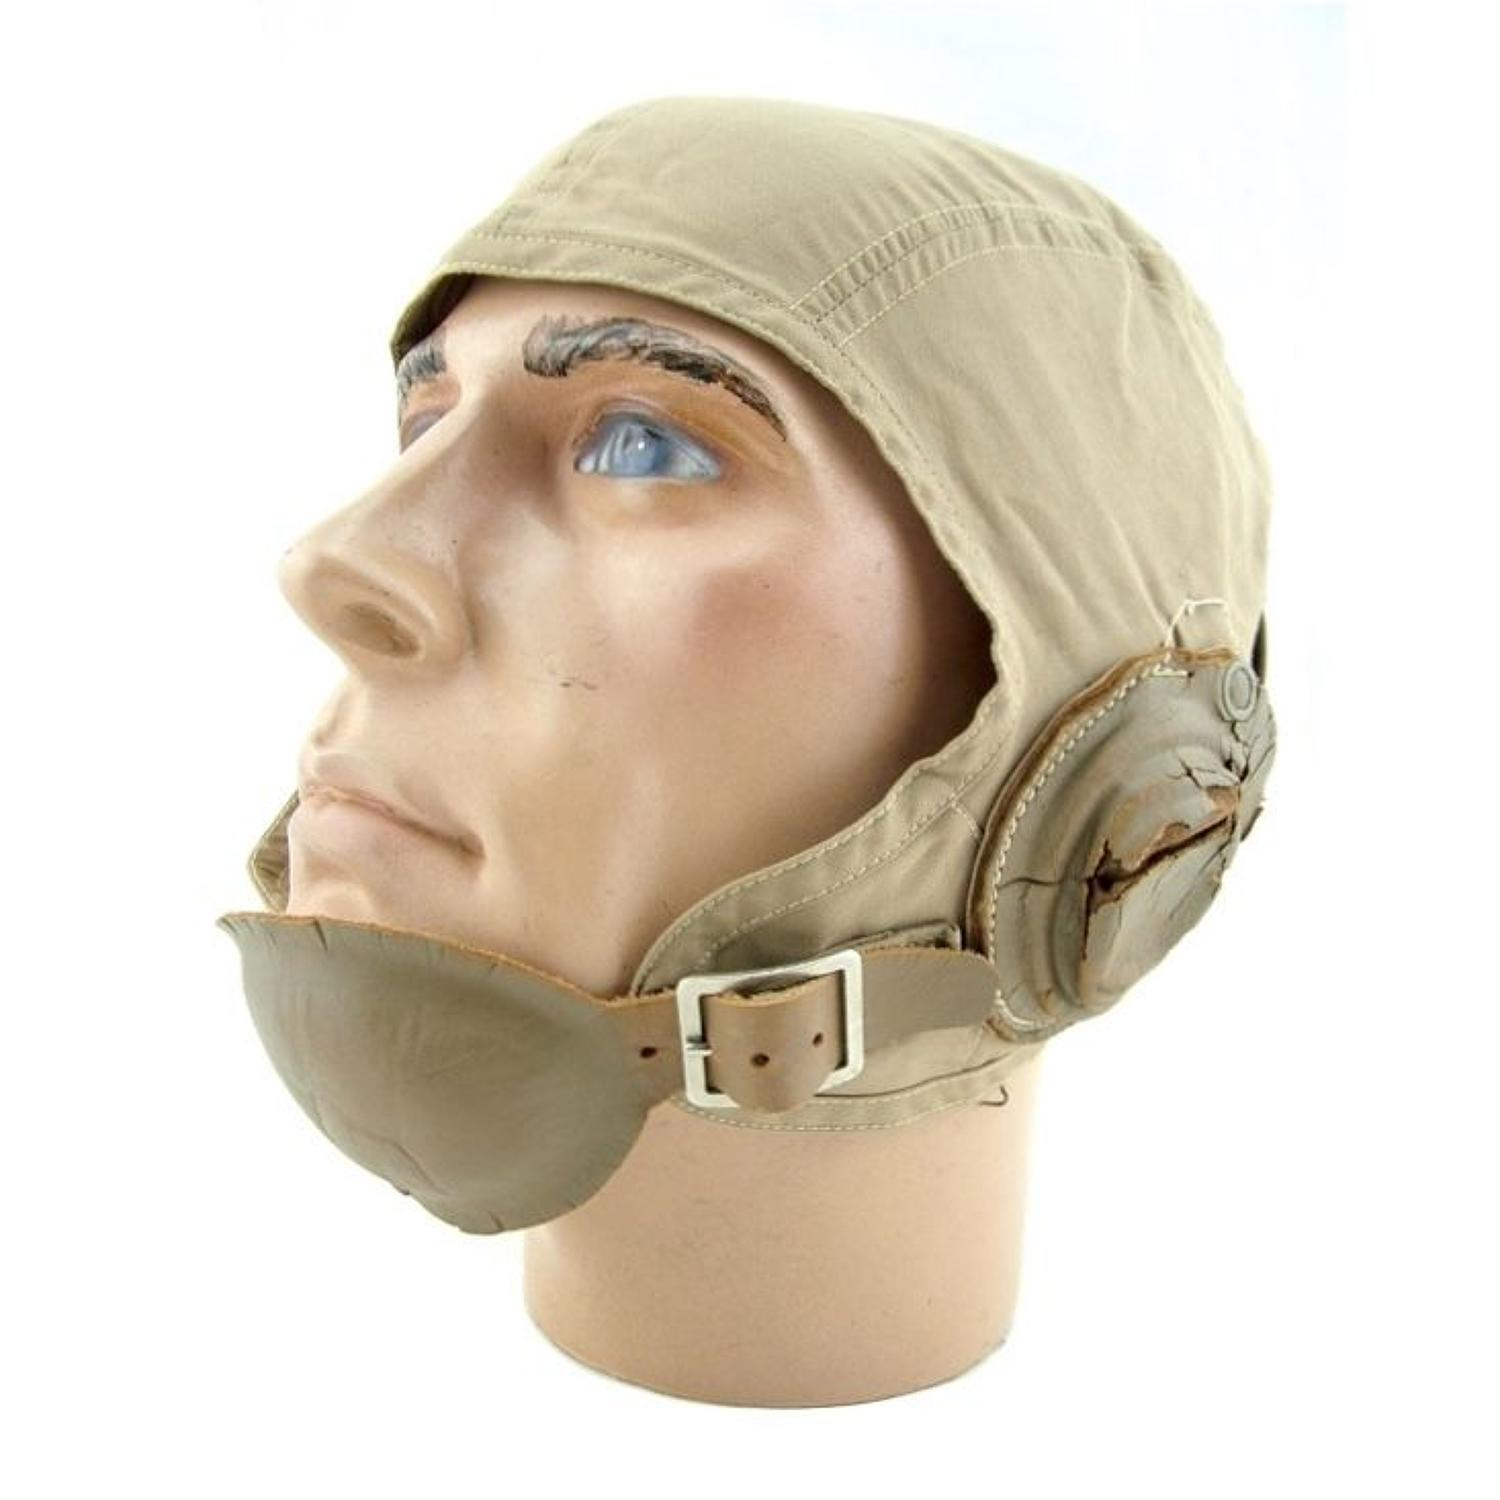 USN M-450 flying helmet